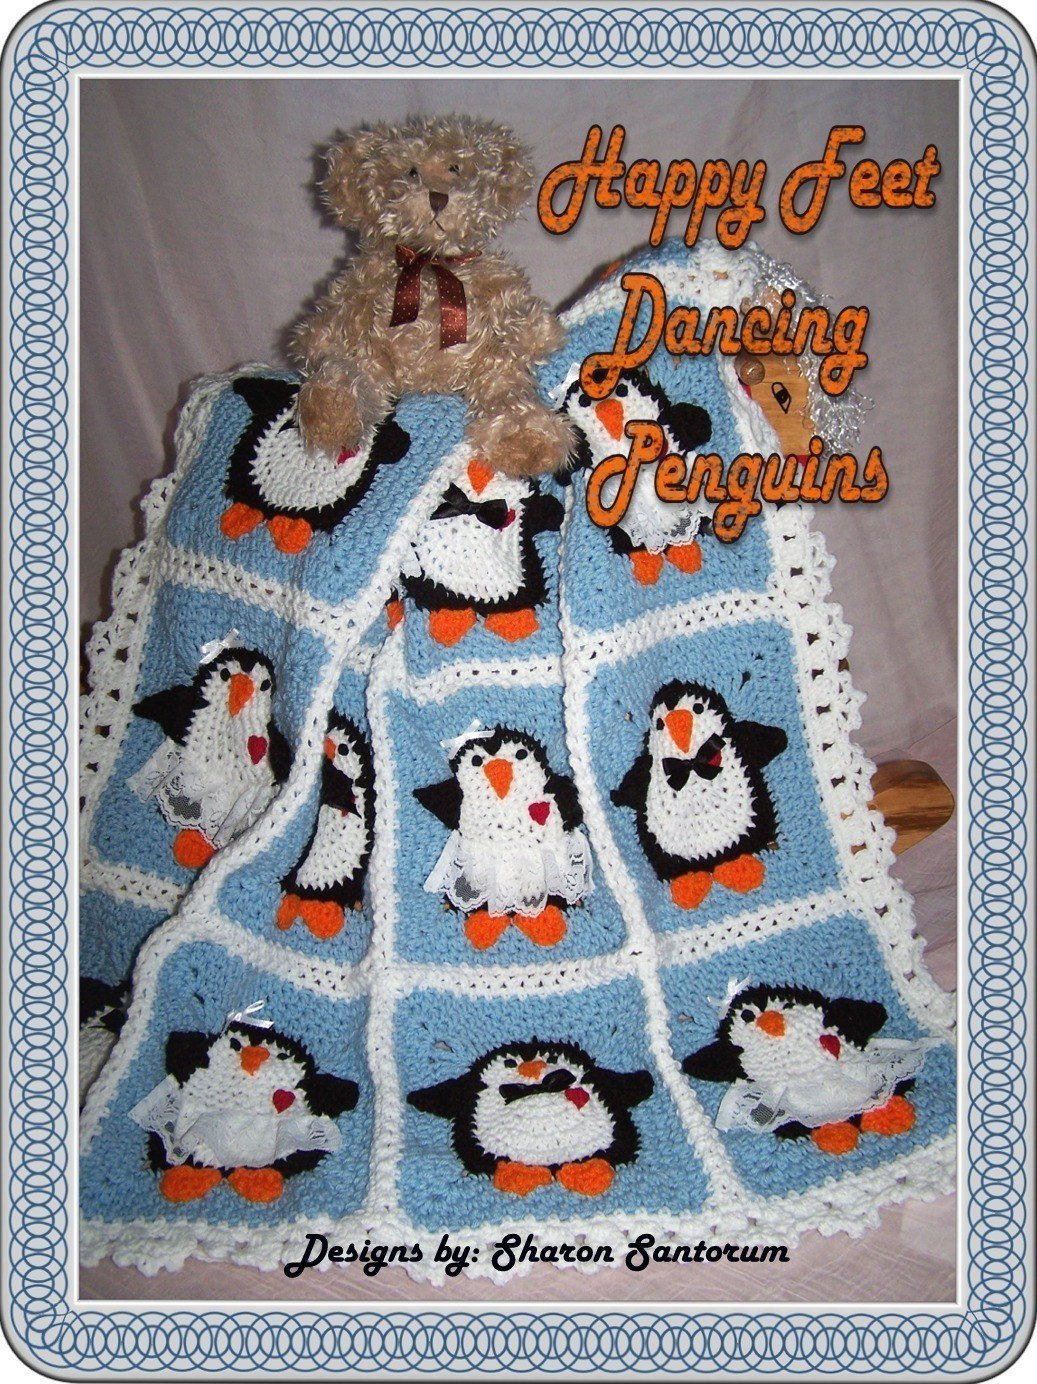 Baby Boy Crochet Blanket Patterns Beautiful Dancing Penguins Crochet Baby Afghan or Blanket Pattern Pdf Of Baby Boy Crochet Blanket Patterns Best Of 10 Beautiful Baby Blanket Free Patterns